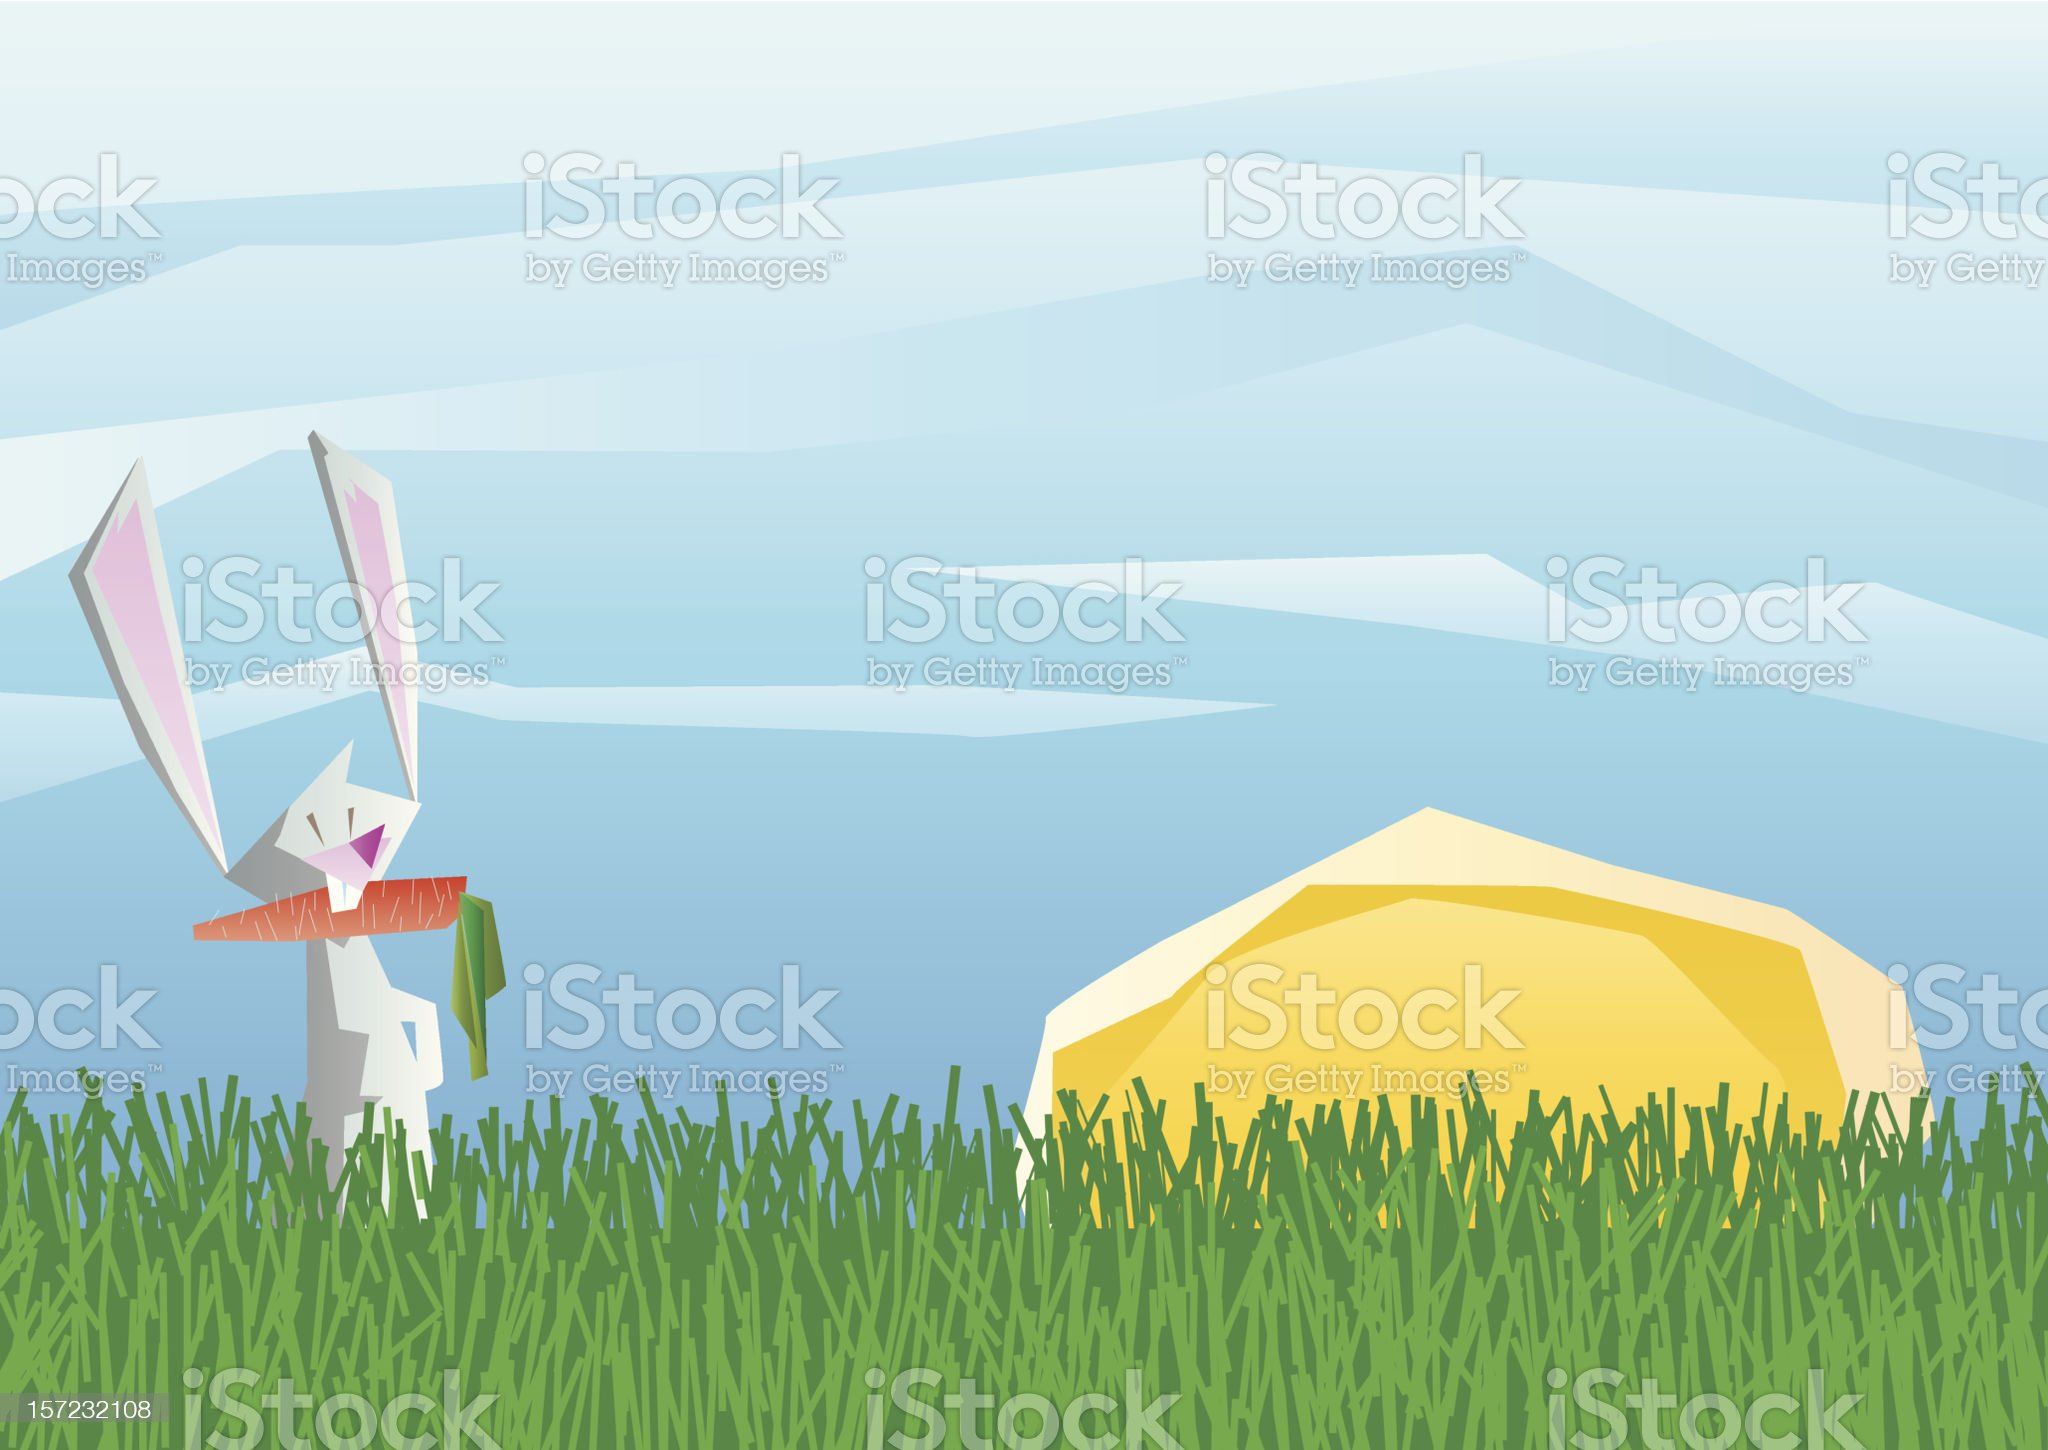 bunny and carrot royalty-free stock vector art